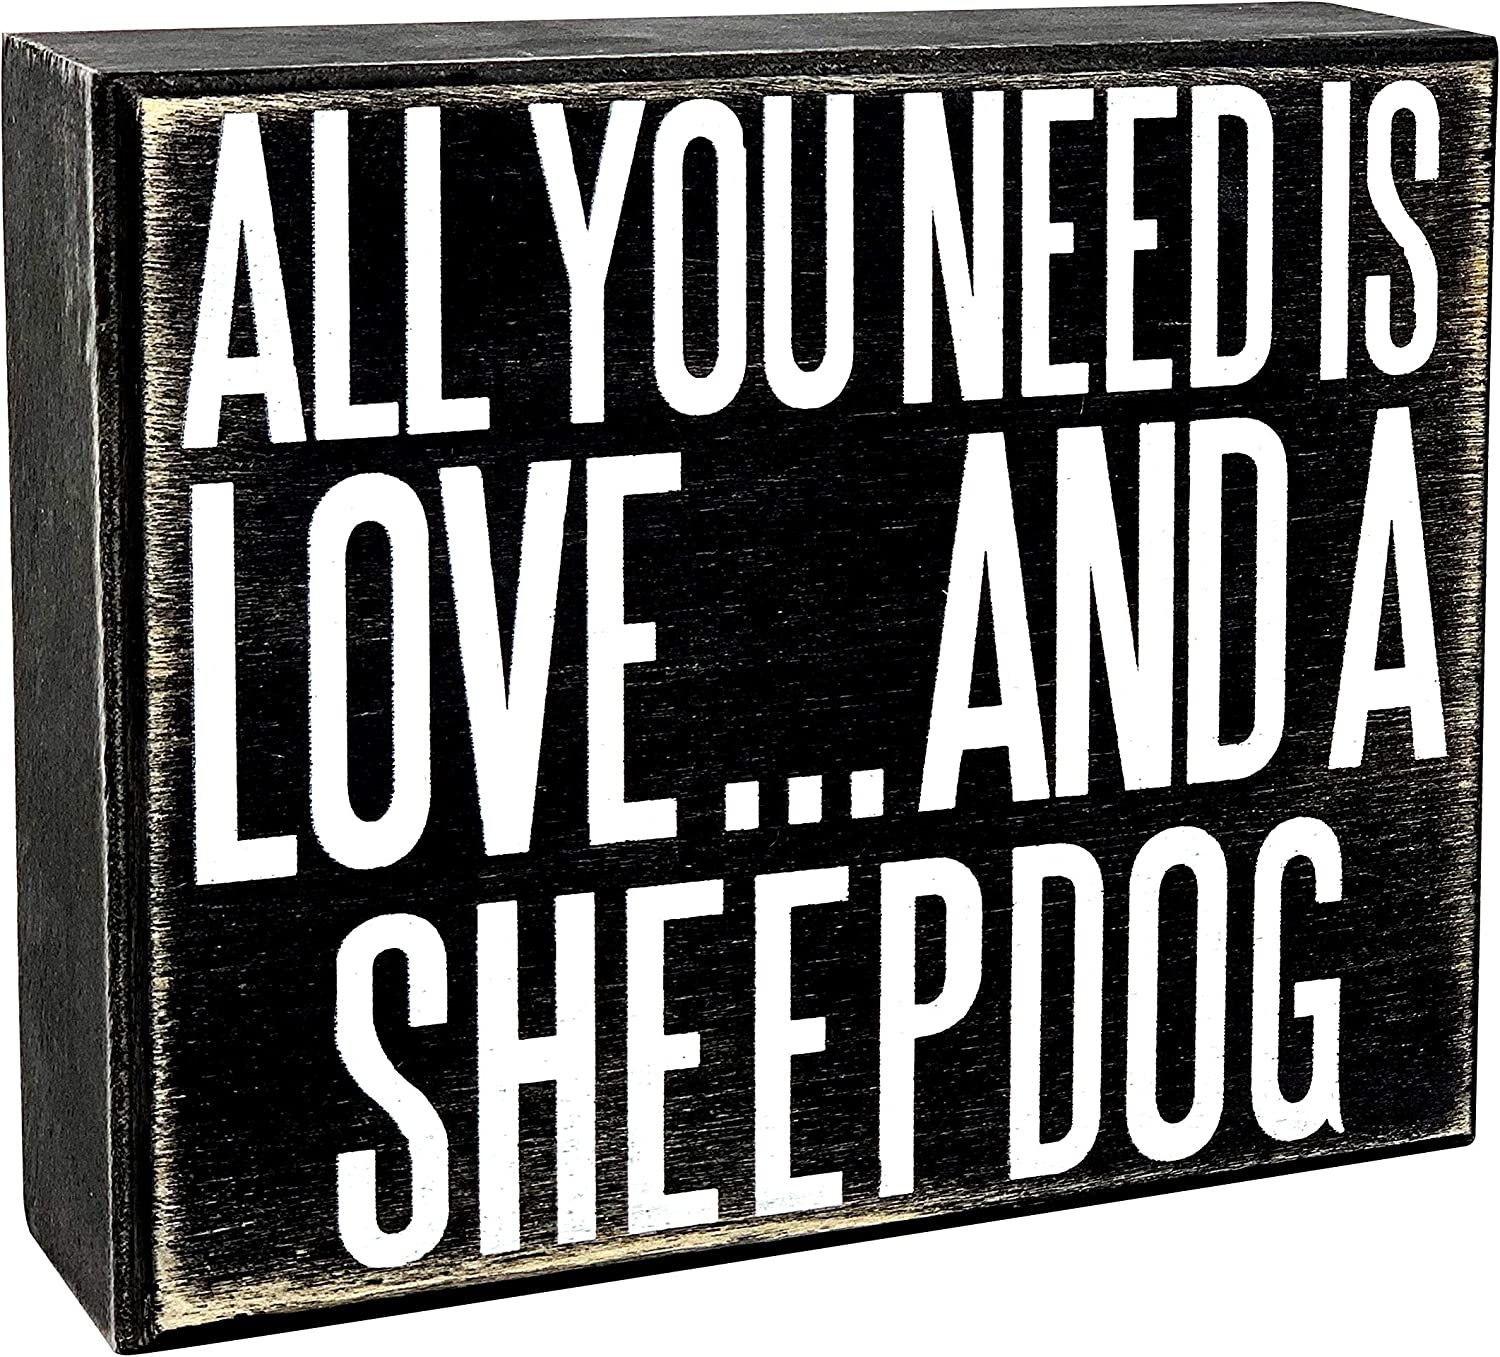 JennyGems - All You Need is Love and a Sheepdog - Wooden Stand Up Box Sign - Sheepdog Gift Series, SheepdogMoms, Sheepdog Lovers, Sheepdog Decor, Sheepdog Sign, Sheepdog Gift, Shelf Knick Knacks